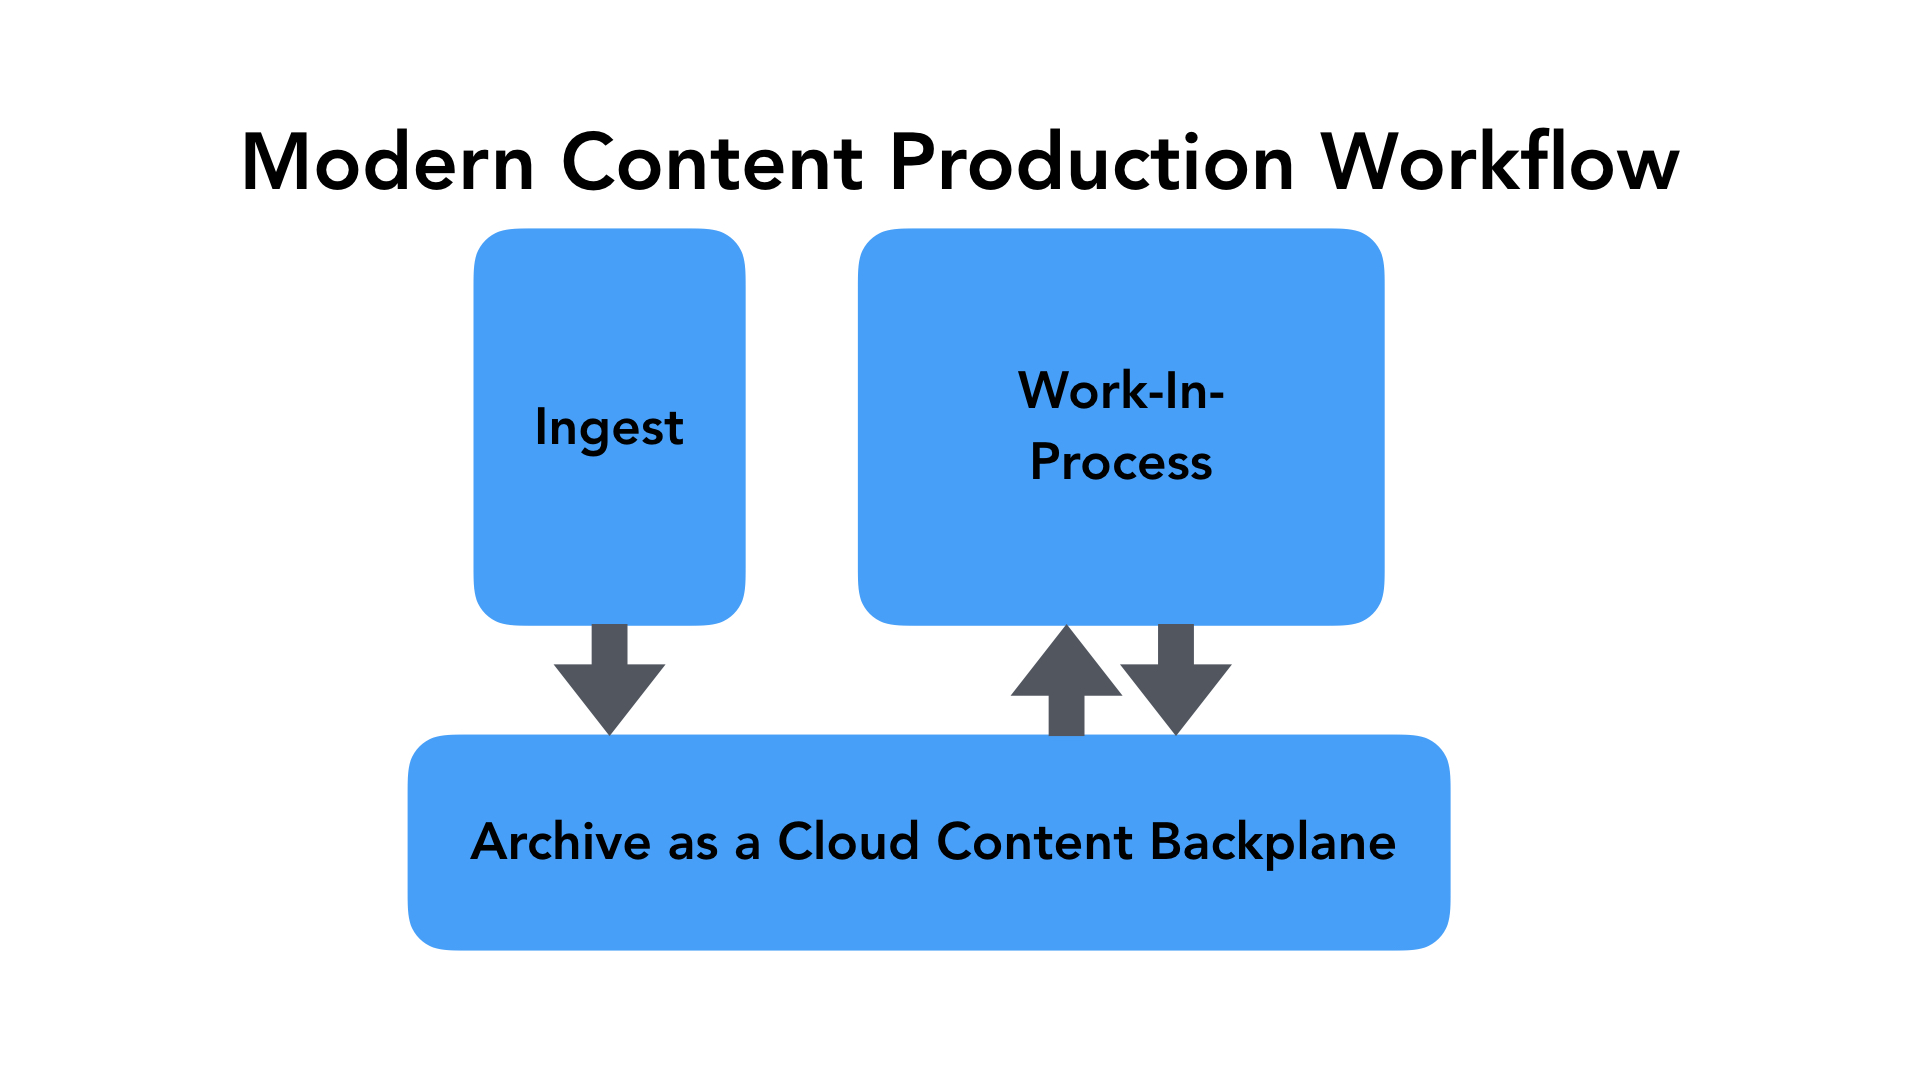 Modern Content Production Workflow - Ingest > Archive as a Cloud Content Backplane ><Work-In-Process